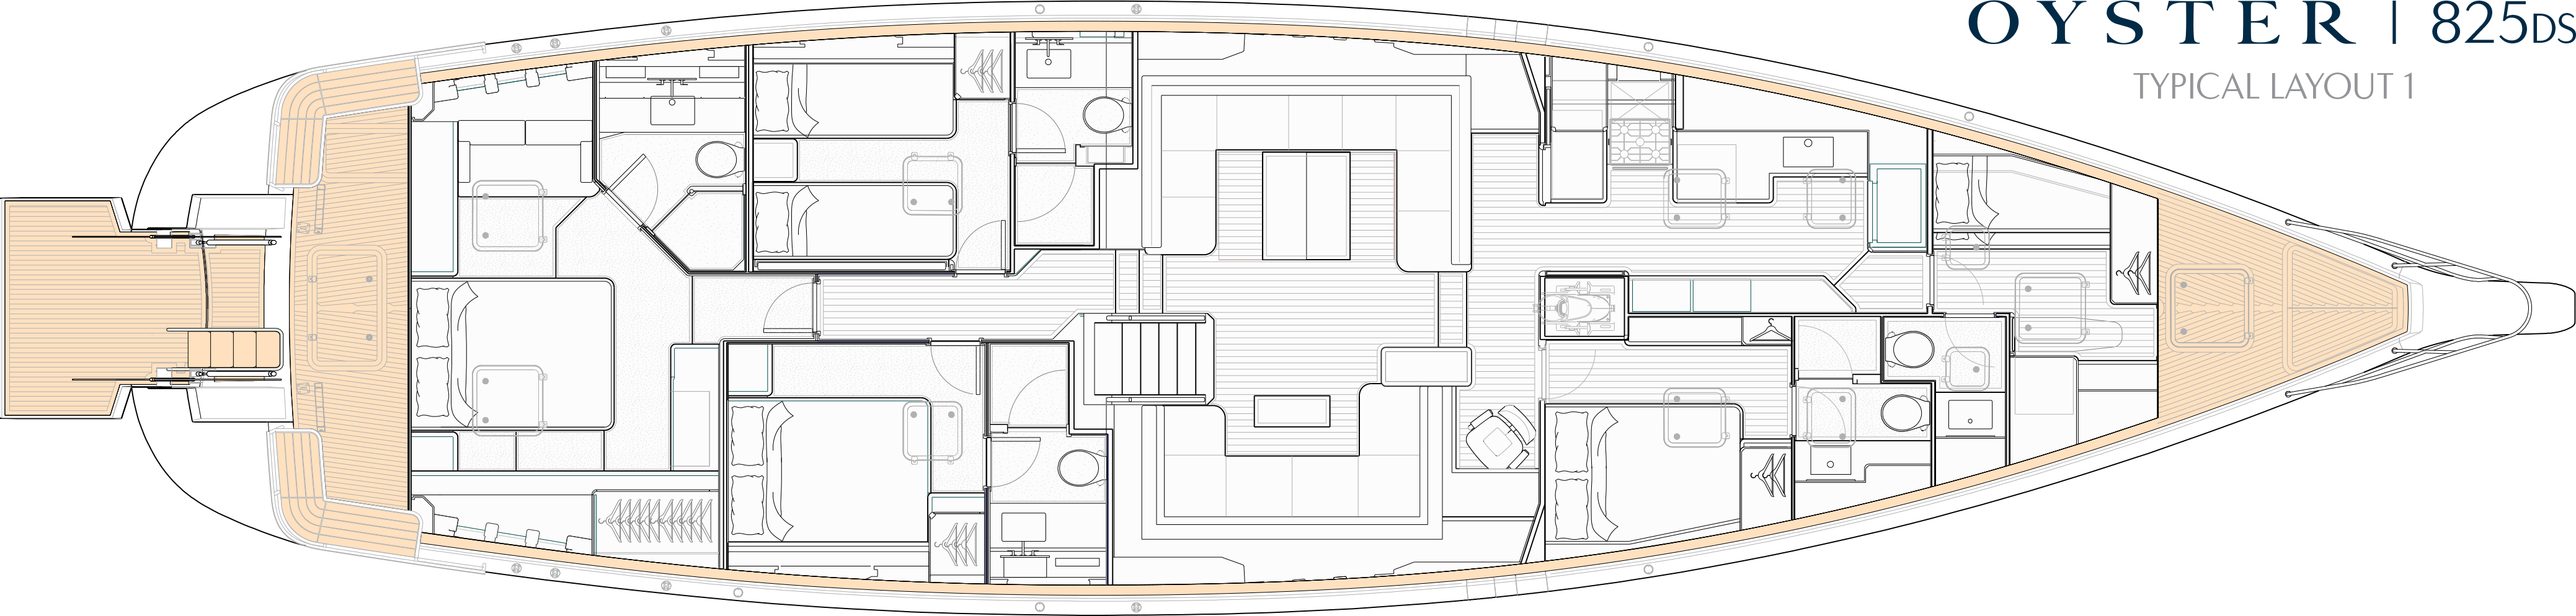 Oyster Marine 825 - oysteryachts-yachts-825_ds_typical_layout_1.jpg